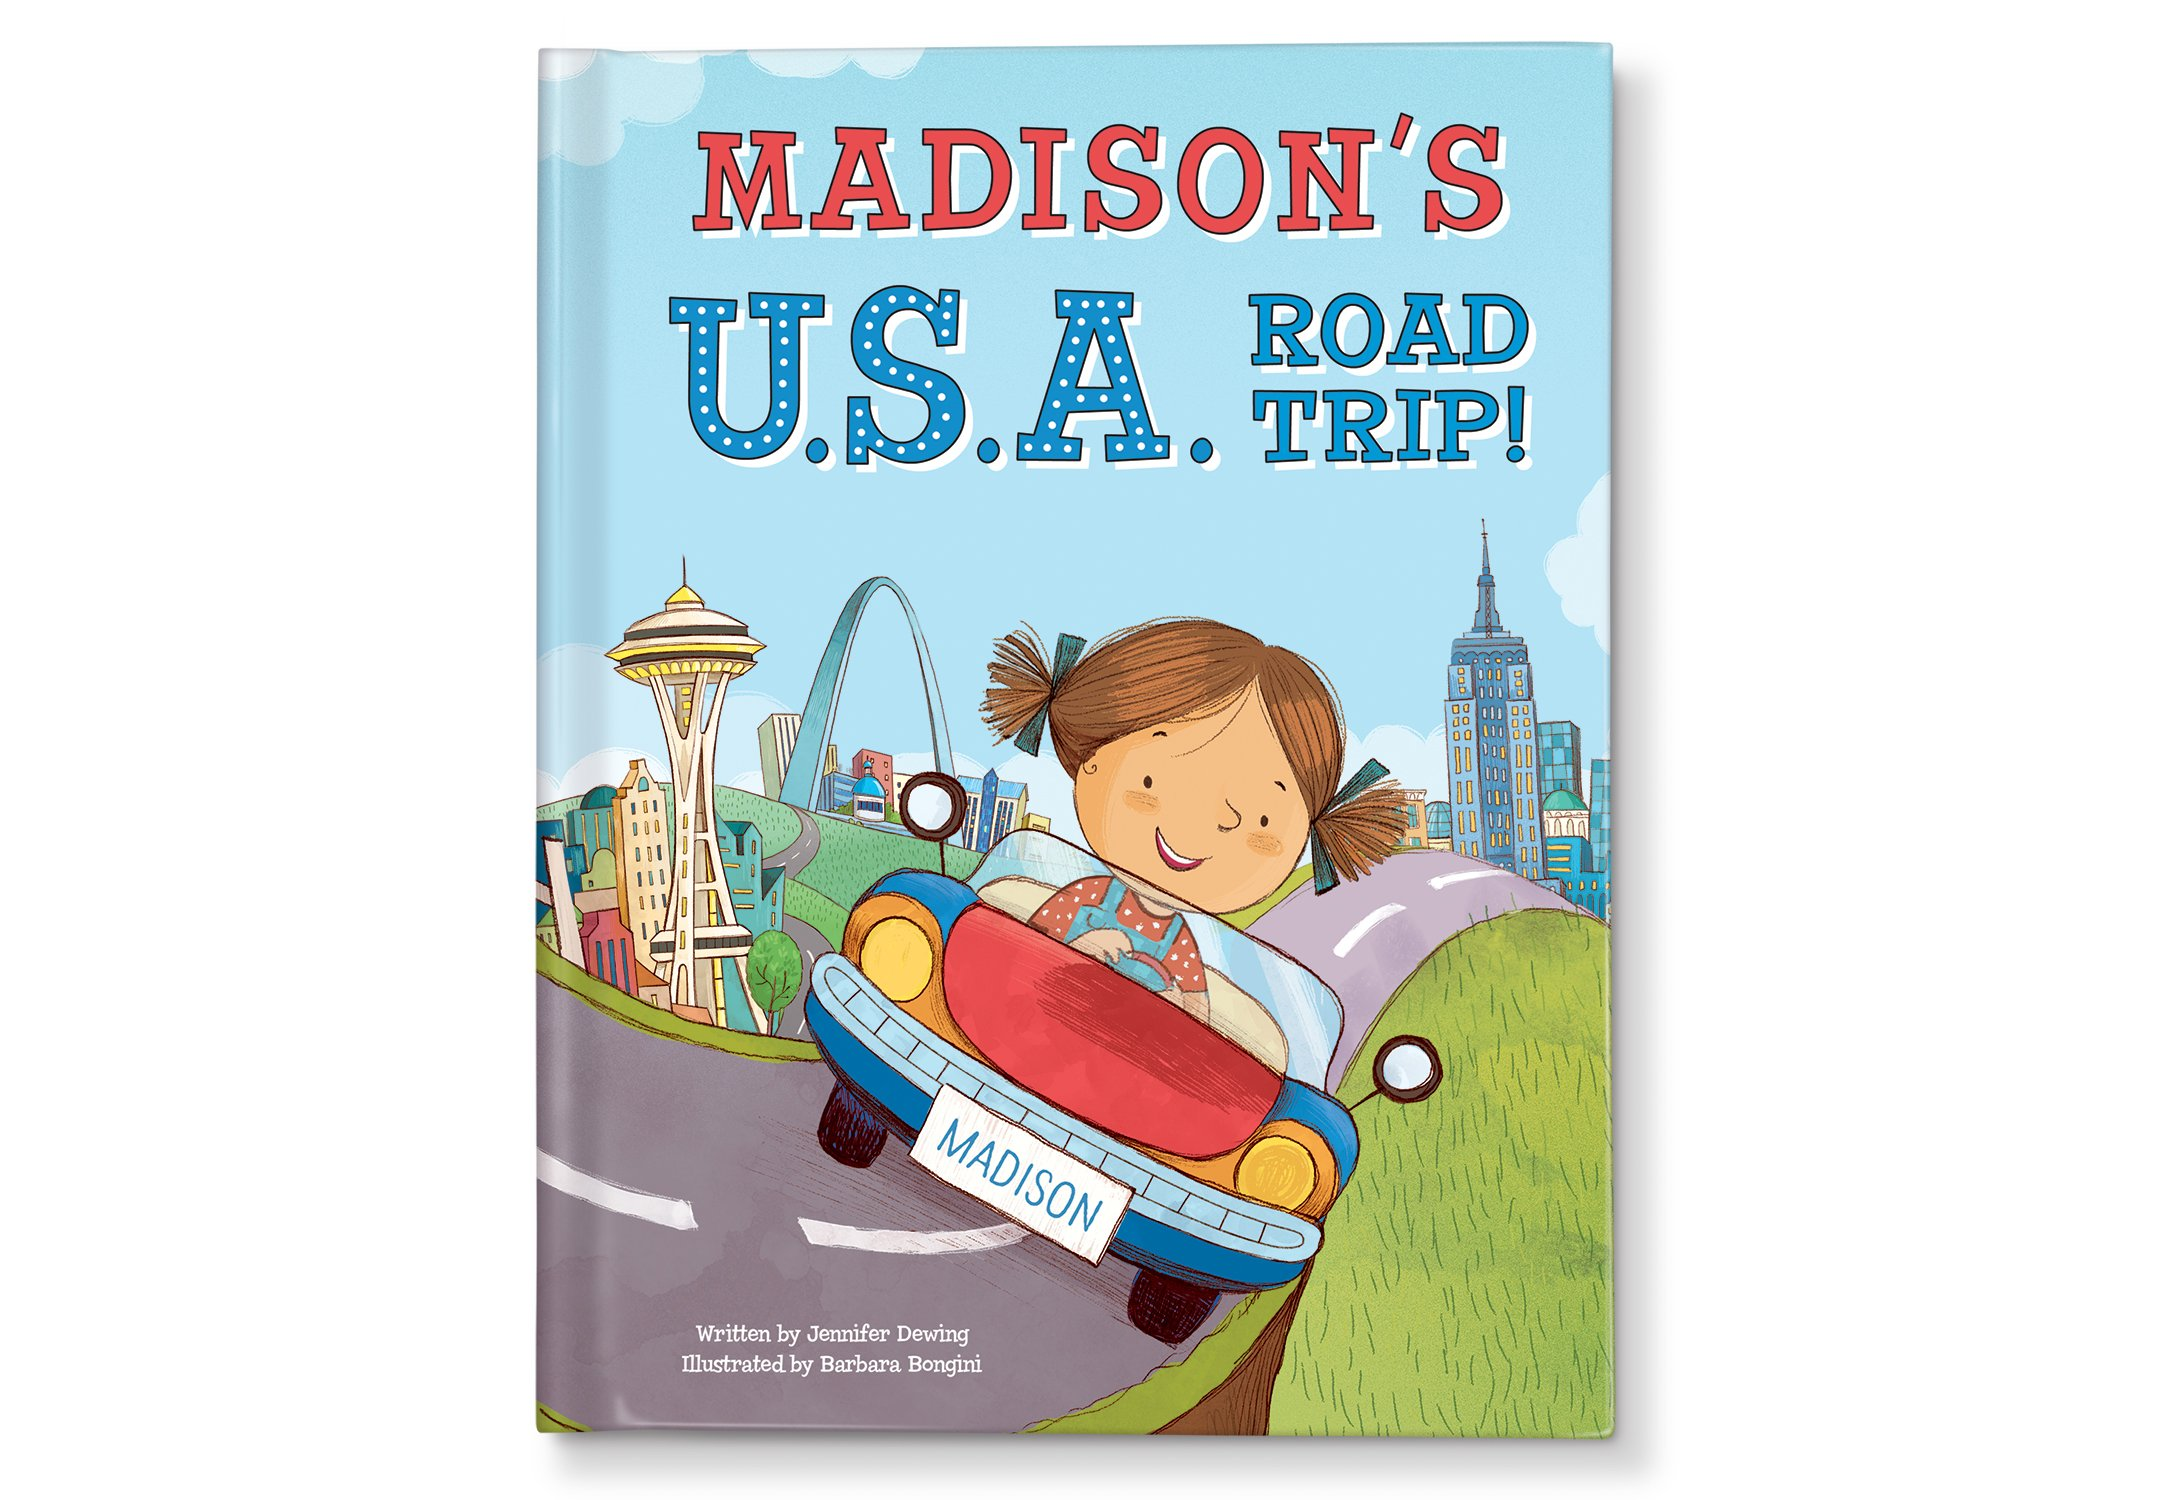 Road Trip USA States Map Personalized Name Book